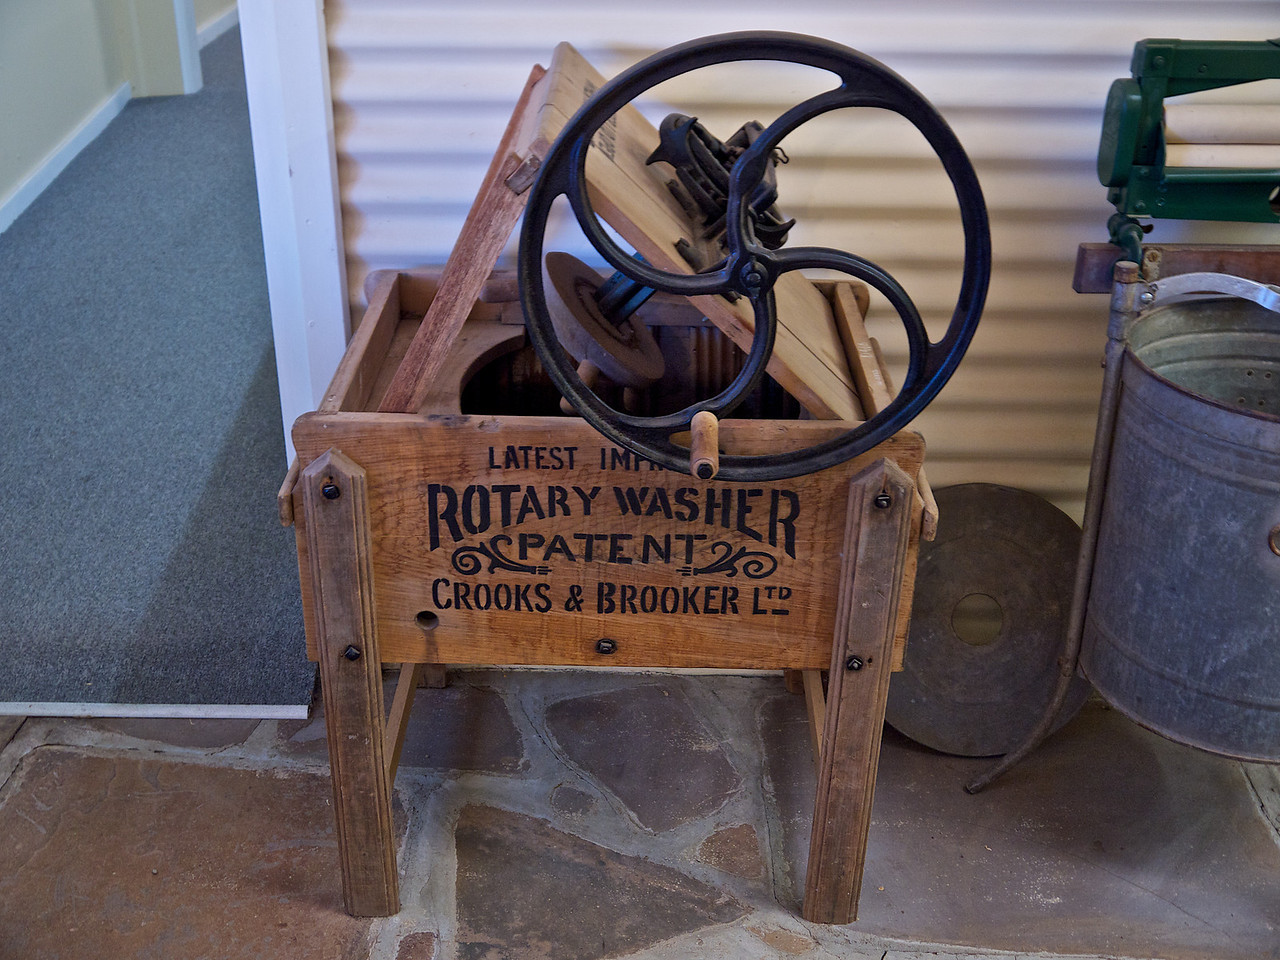 Close up view of an old Rotary Washer